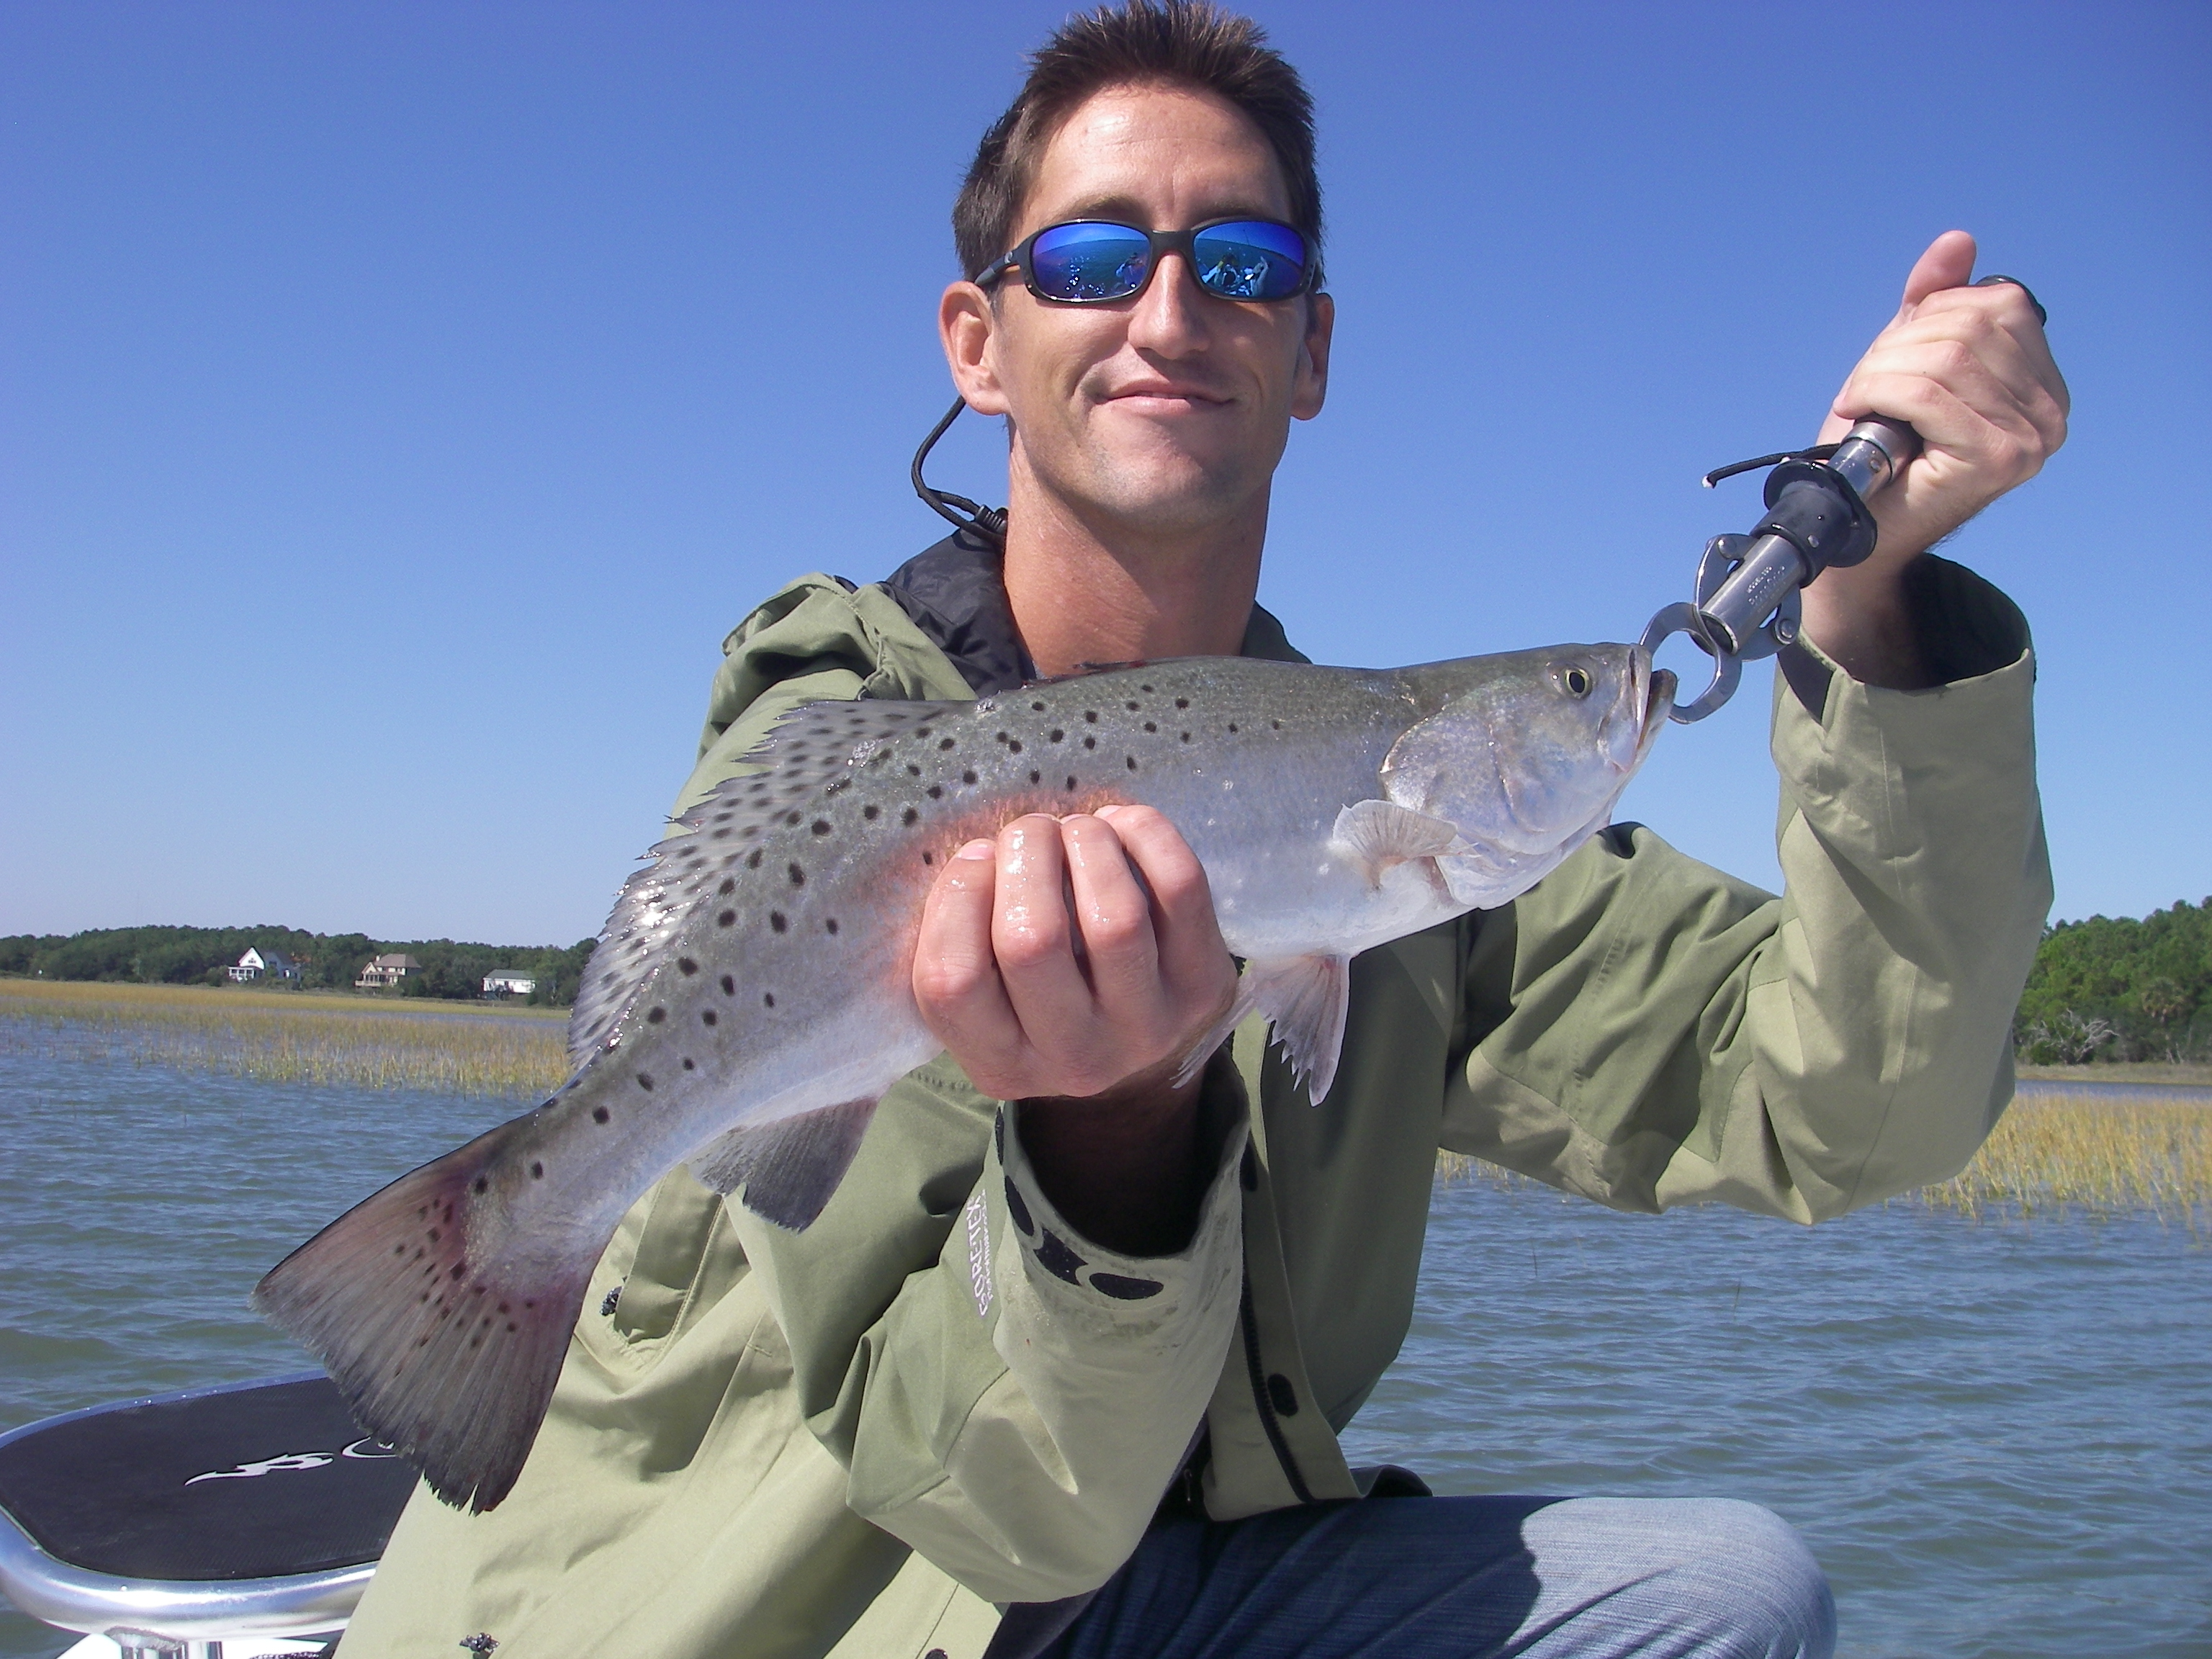 Seasonal fishing finaddict charters 843 224 7462 for Charleston fly fishing